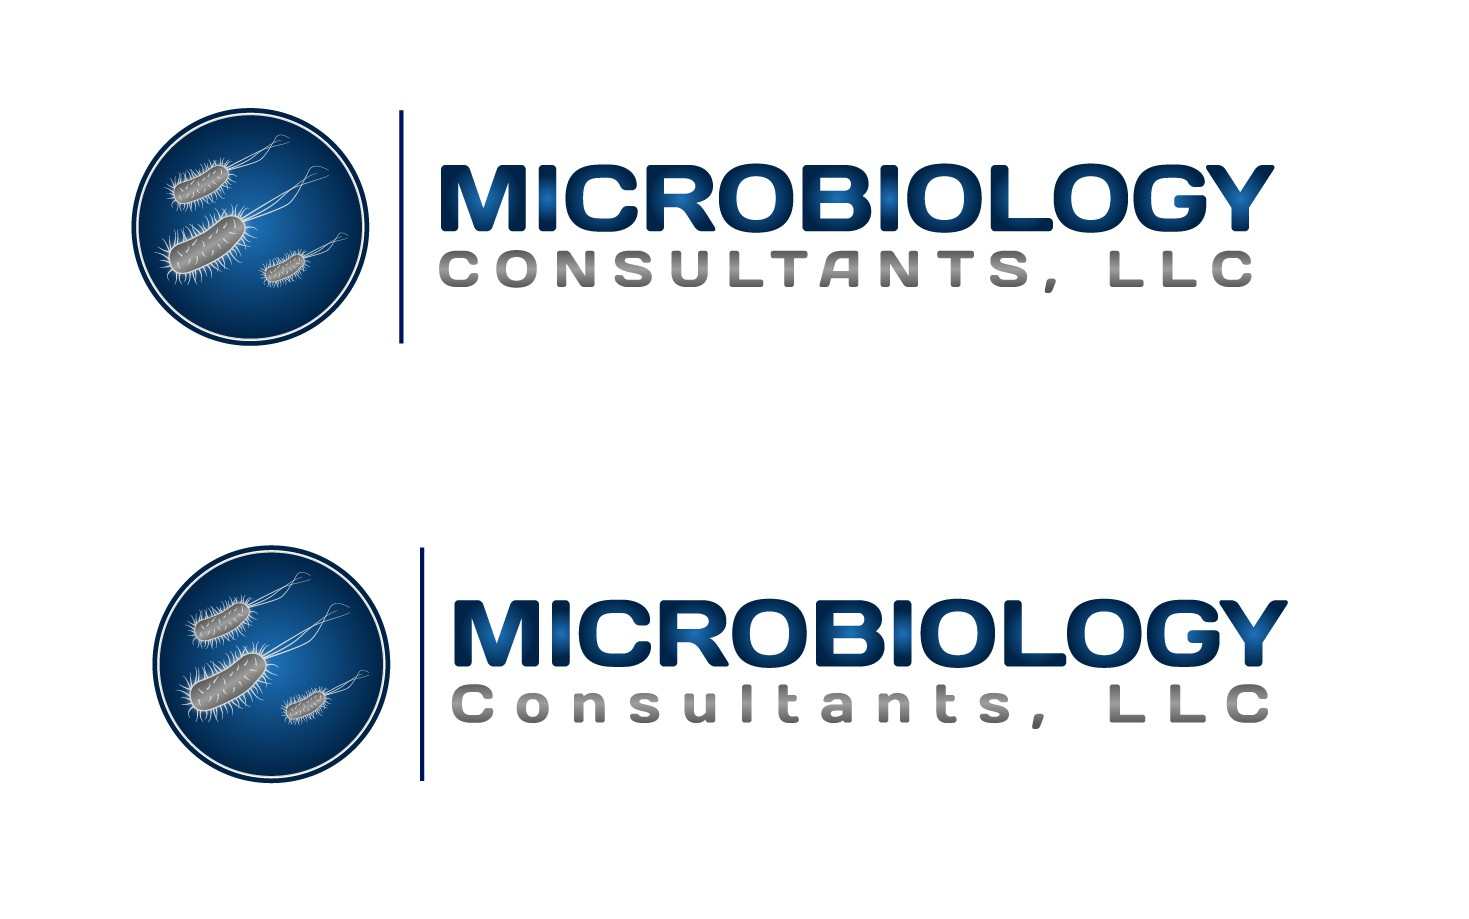 Create the next logo for Microbiology Consultants, LLC